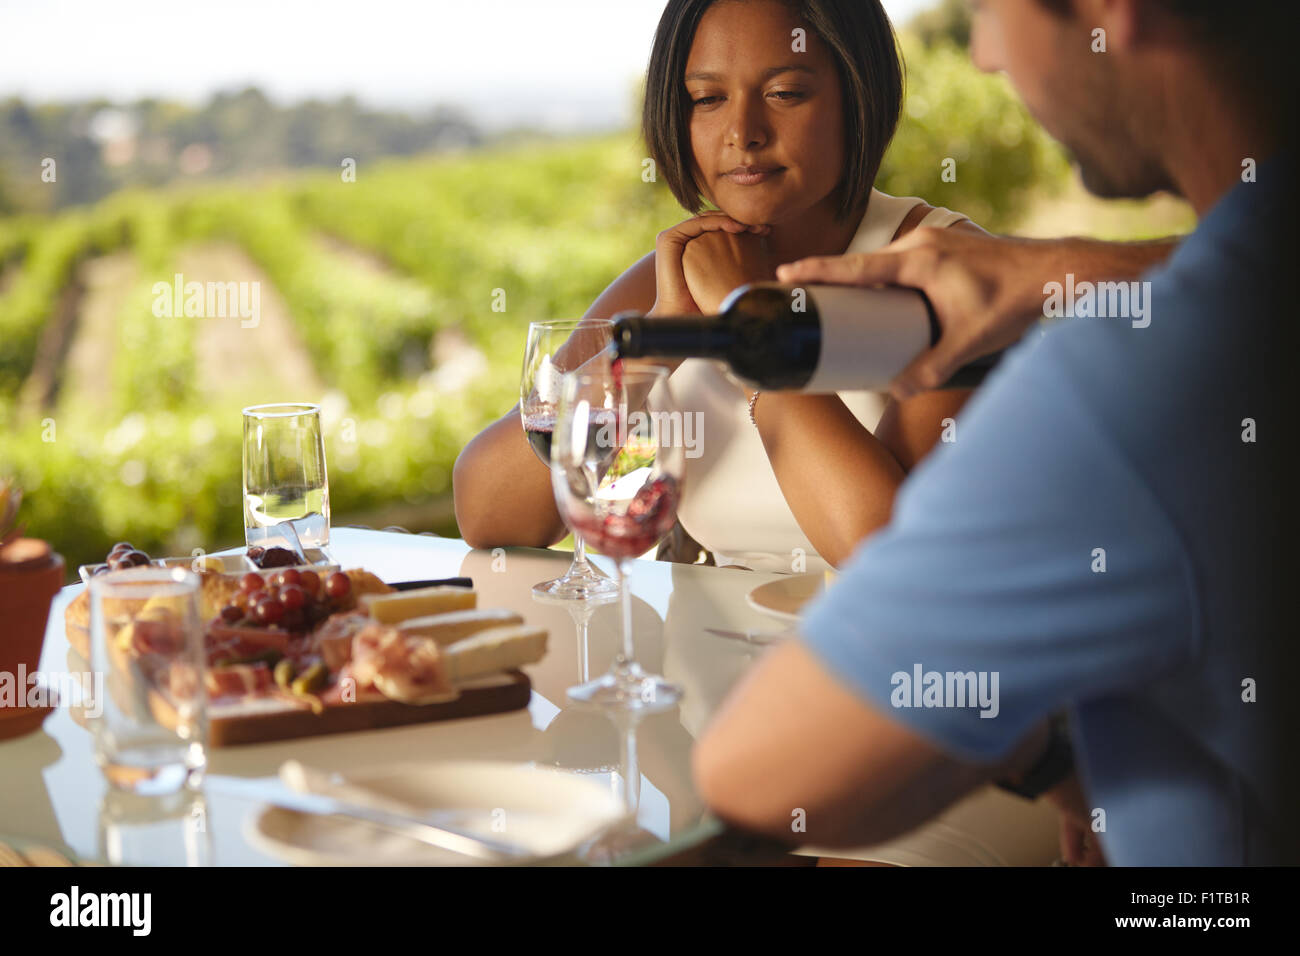 Young woman sitting at a table while man pouring some red wine into his glass. Couple at winery restaurant drinking - Stock Image